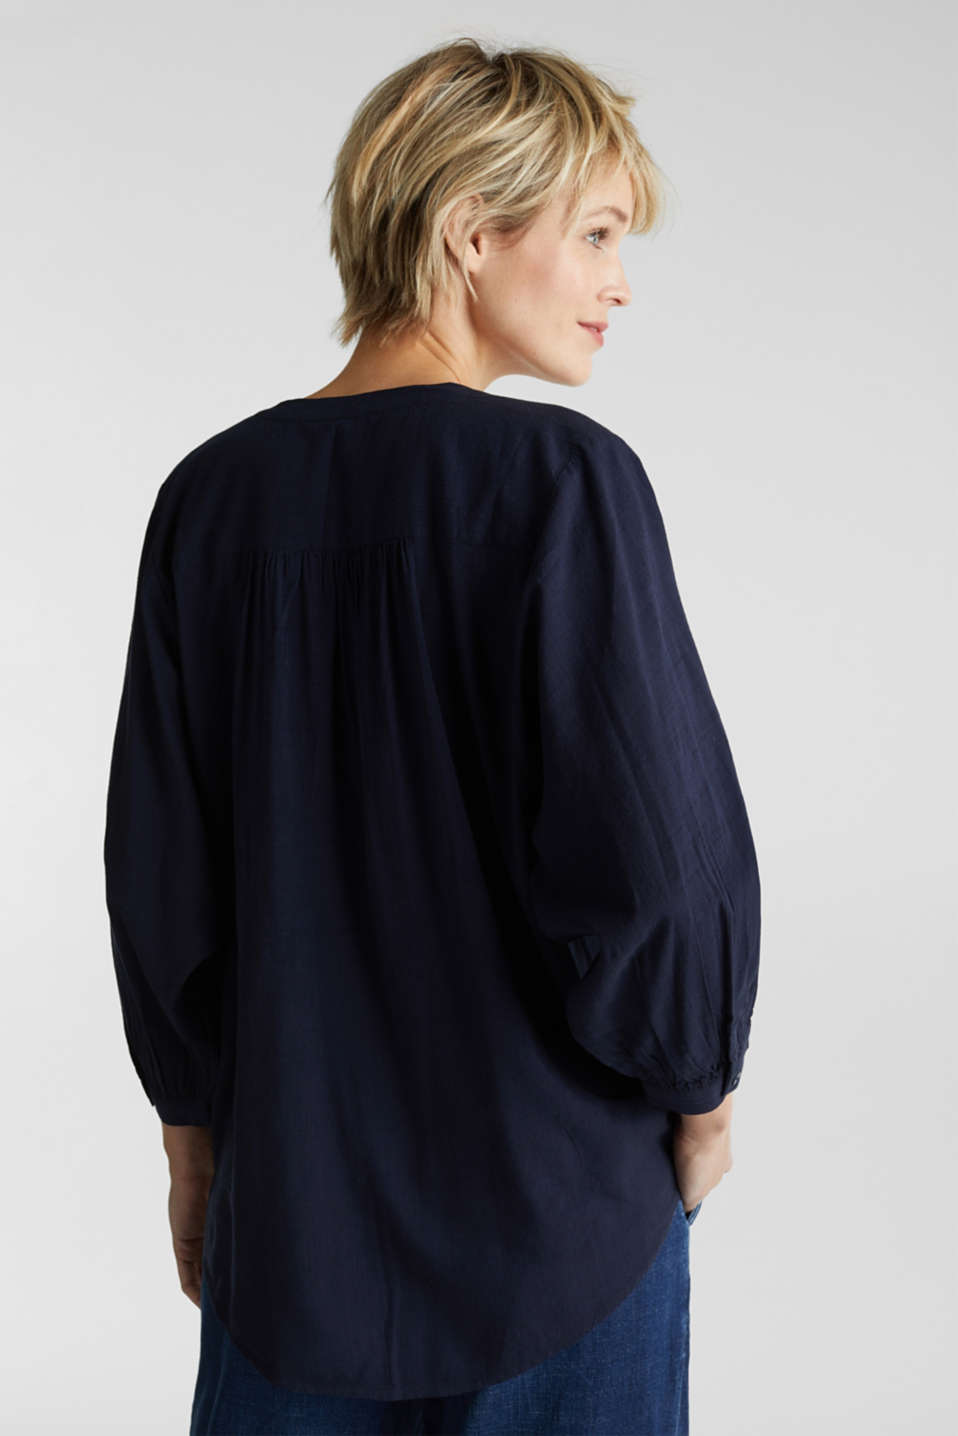 Textured blouse with batwing sleeves, NAVY, detail image number 3